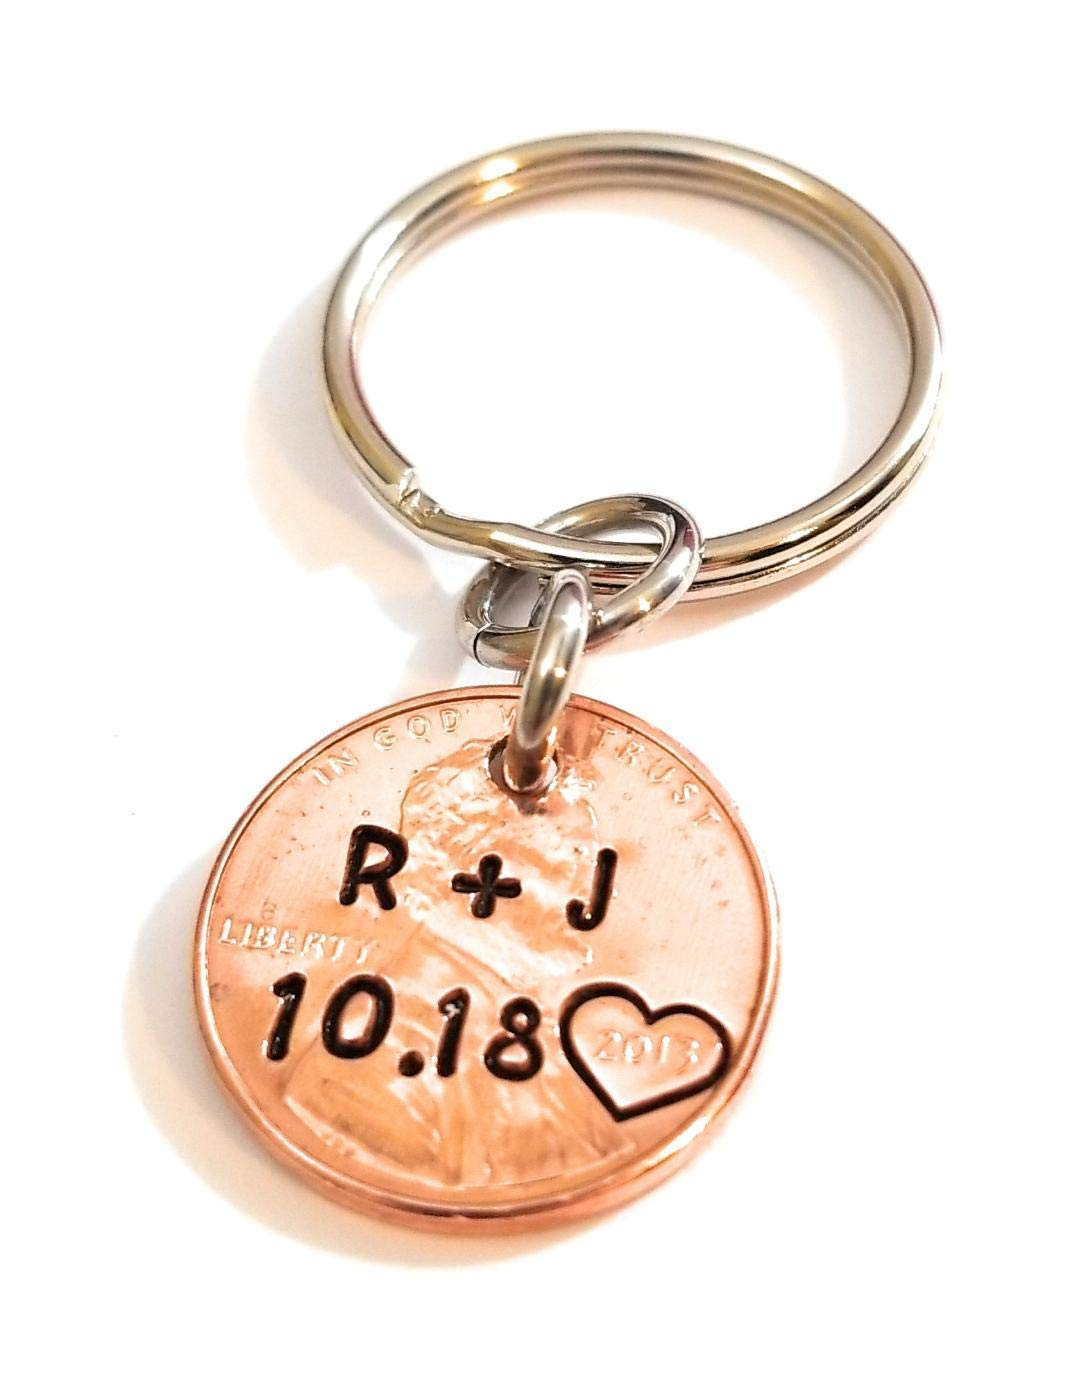 Personalized Keychain Penny Keychain Lucky Penny Gift for Men Gift for Husband Penny Anniversary Gift for Boyfriend Couples Keychain